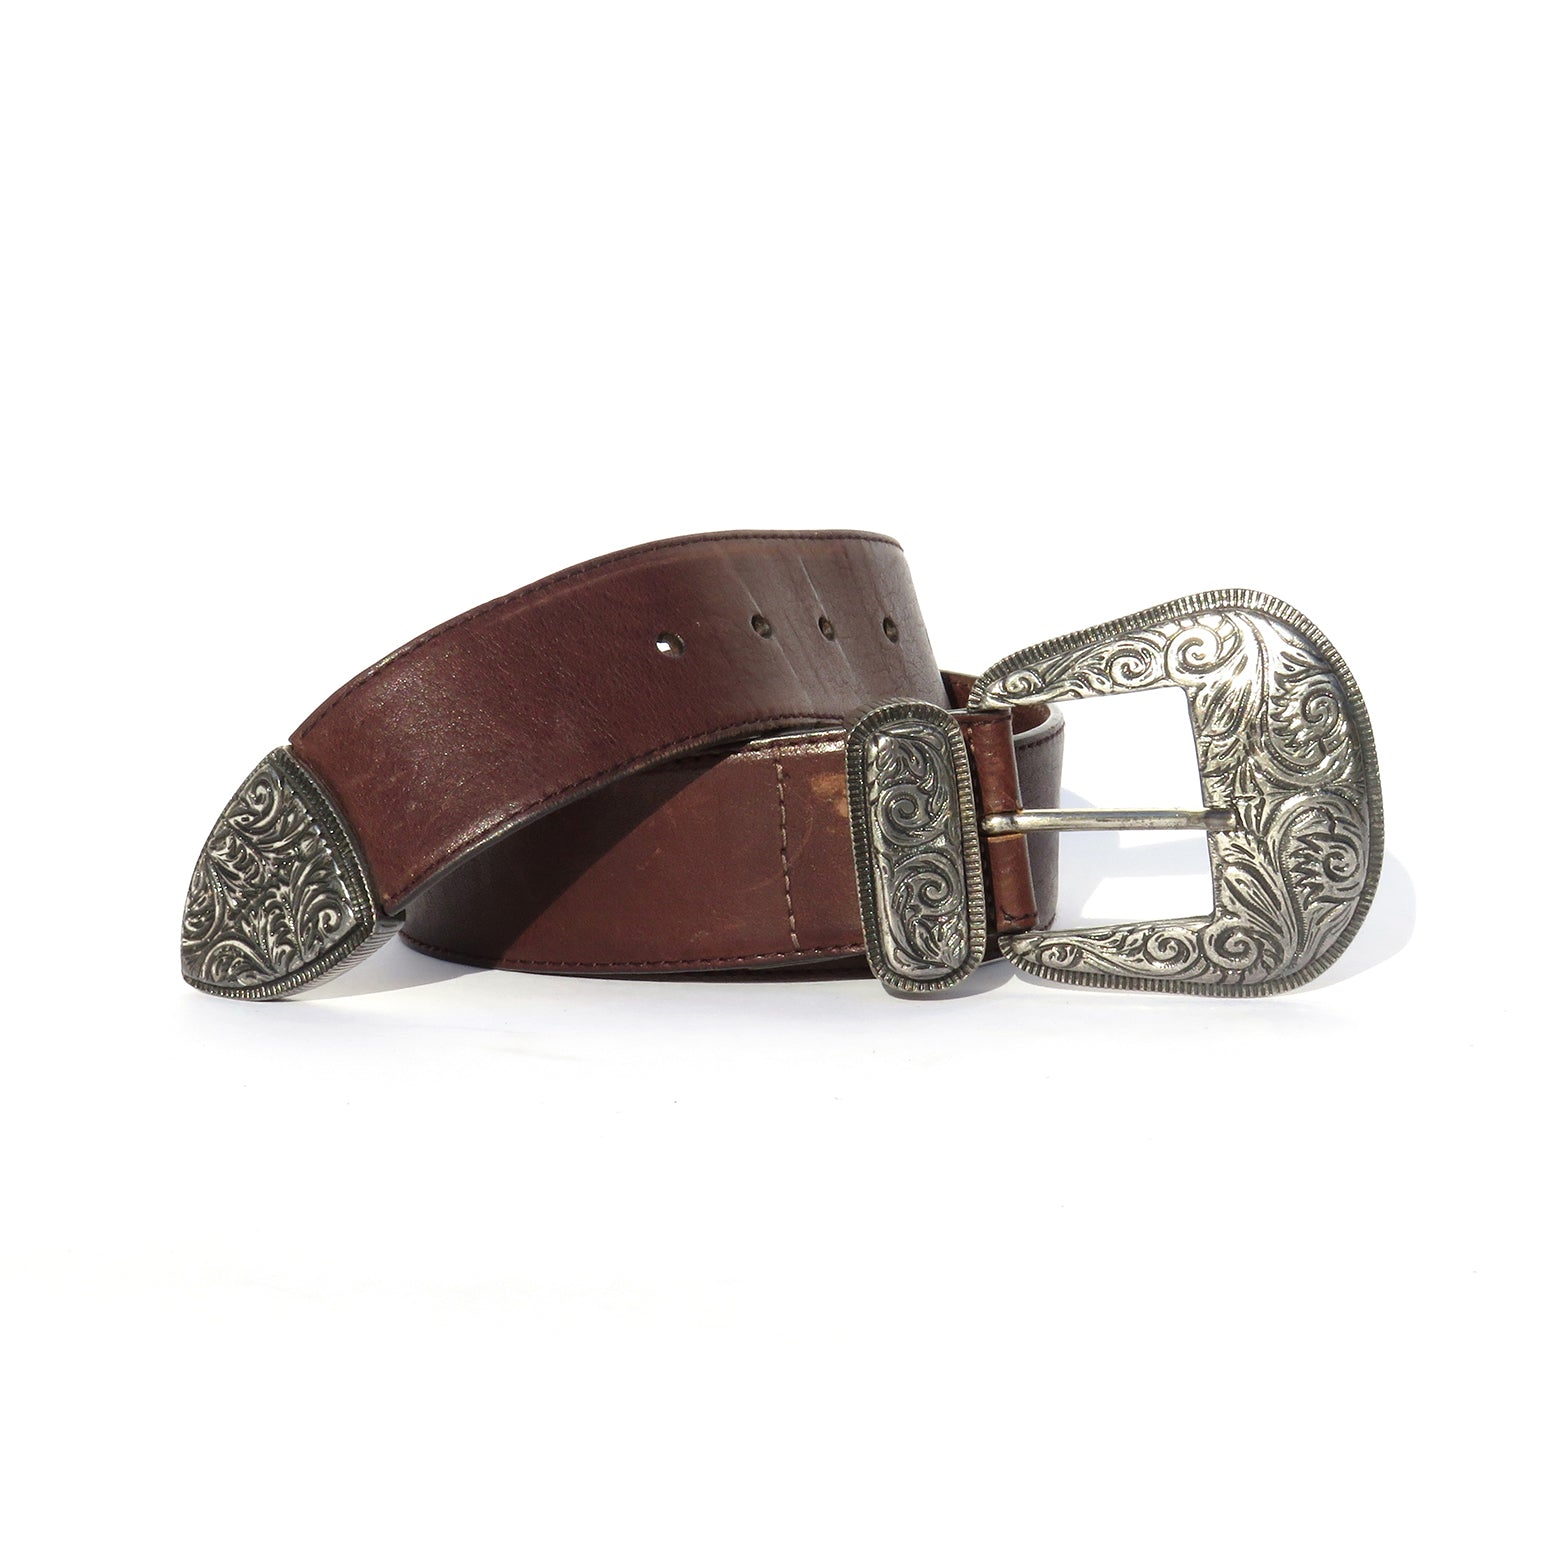 ETRO Dark Brown Leather Peg In Hole Silver Ornate Buckle Tip Waist Belt 85cm 32""